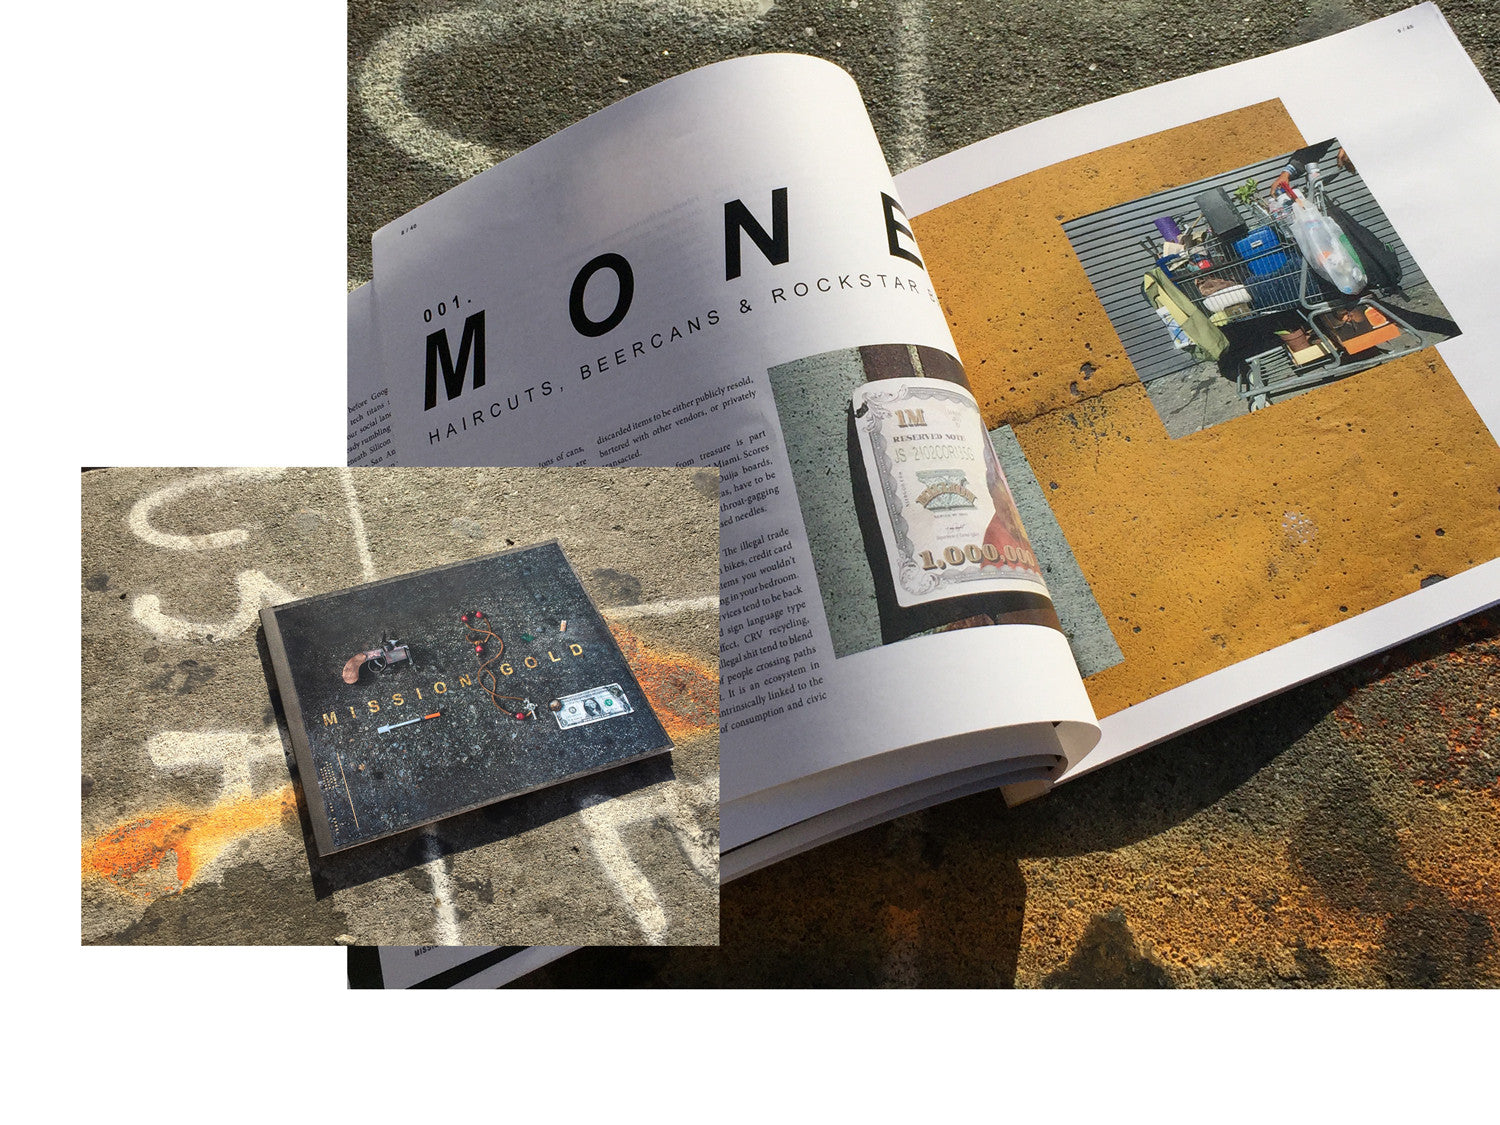 ISSUE 001 - MONEY: Haircuts, Beer Cans & Rockstar Bartering.